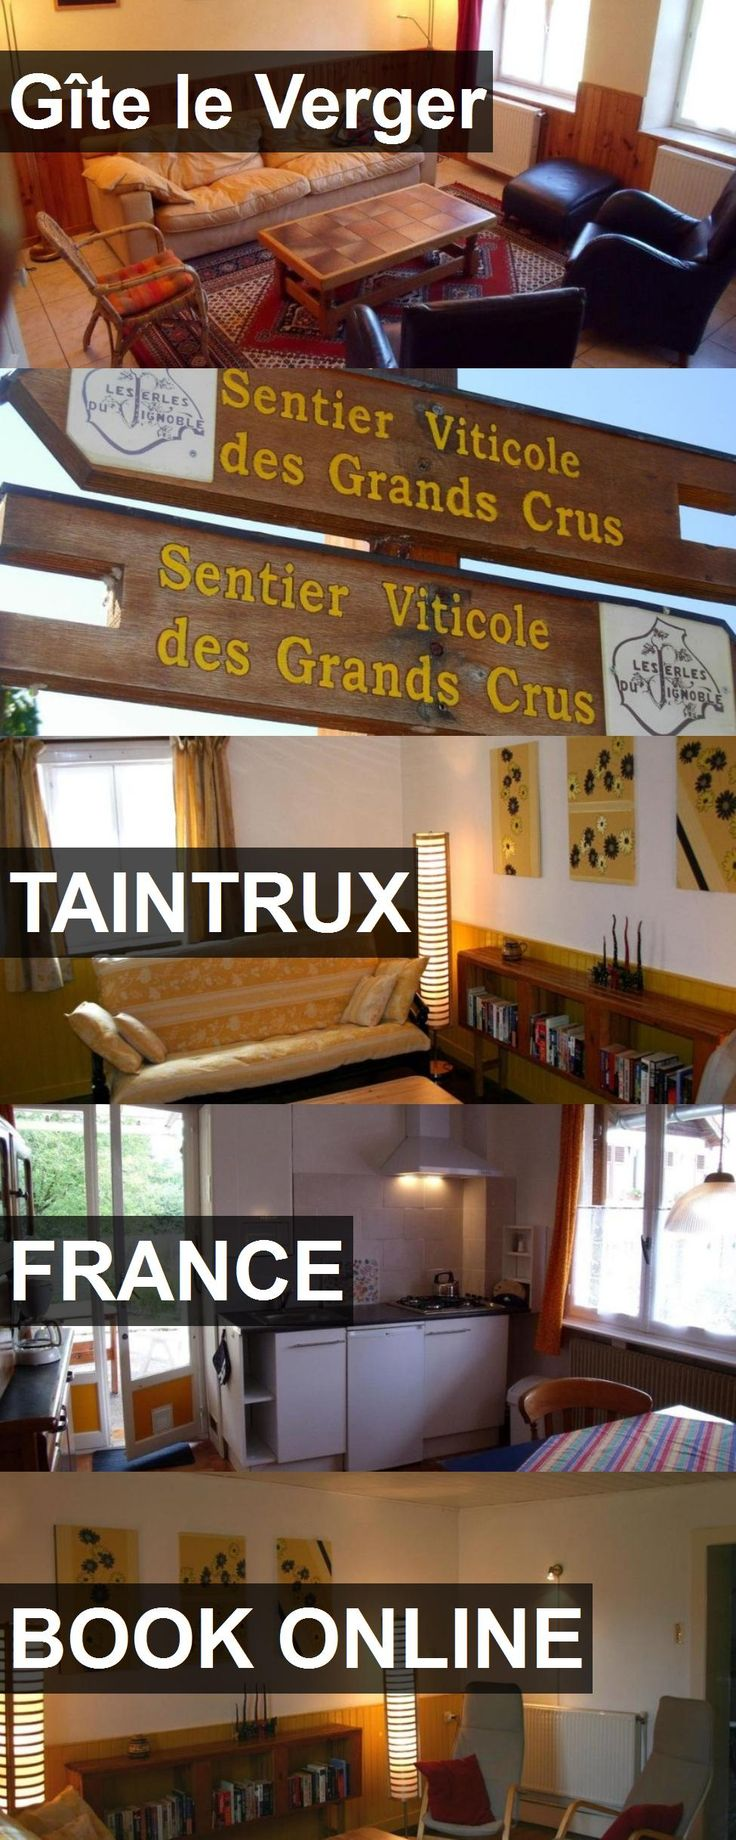 Hotel Gîte le Verger in Taintrux, France. For more information, photos, reviews and best prices please follow the link. #France #Taintrux #travel #vacation #hotel